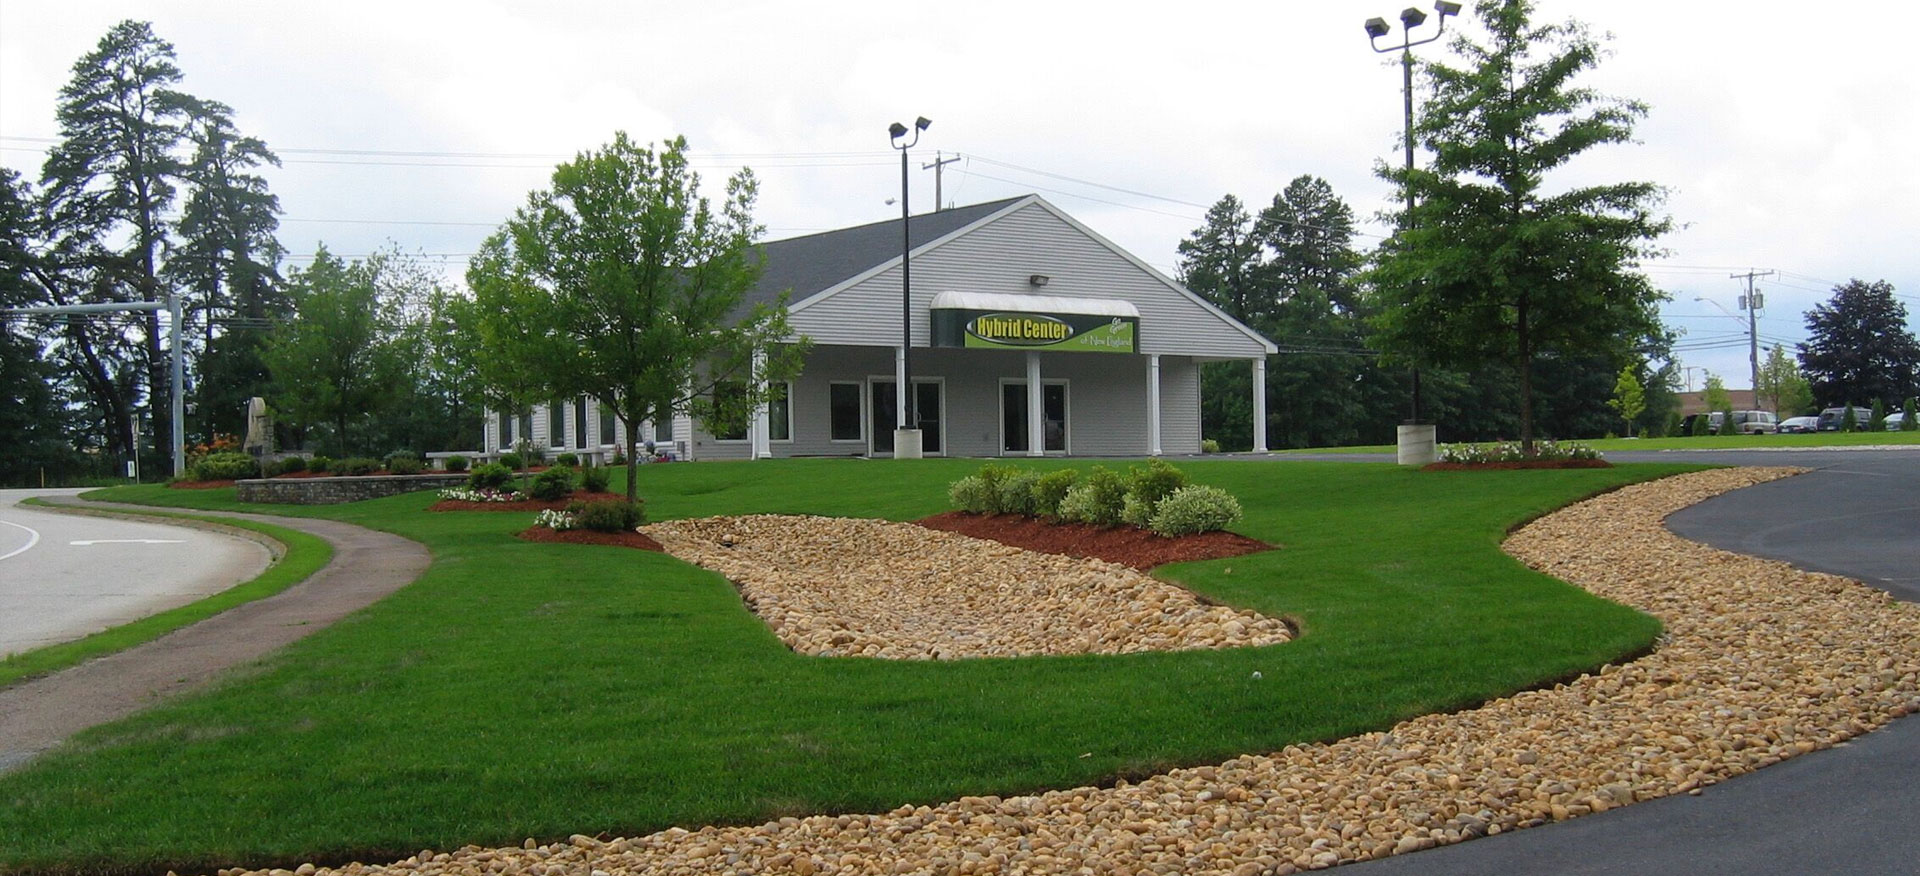 Commercial Lanscaping, Snow Removal and Maintenance